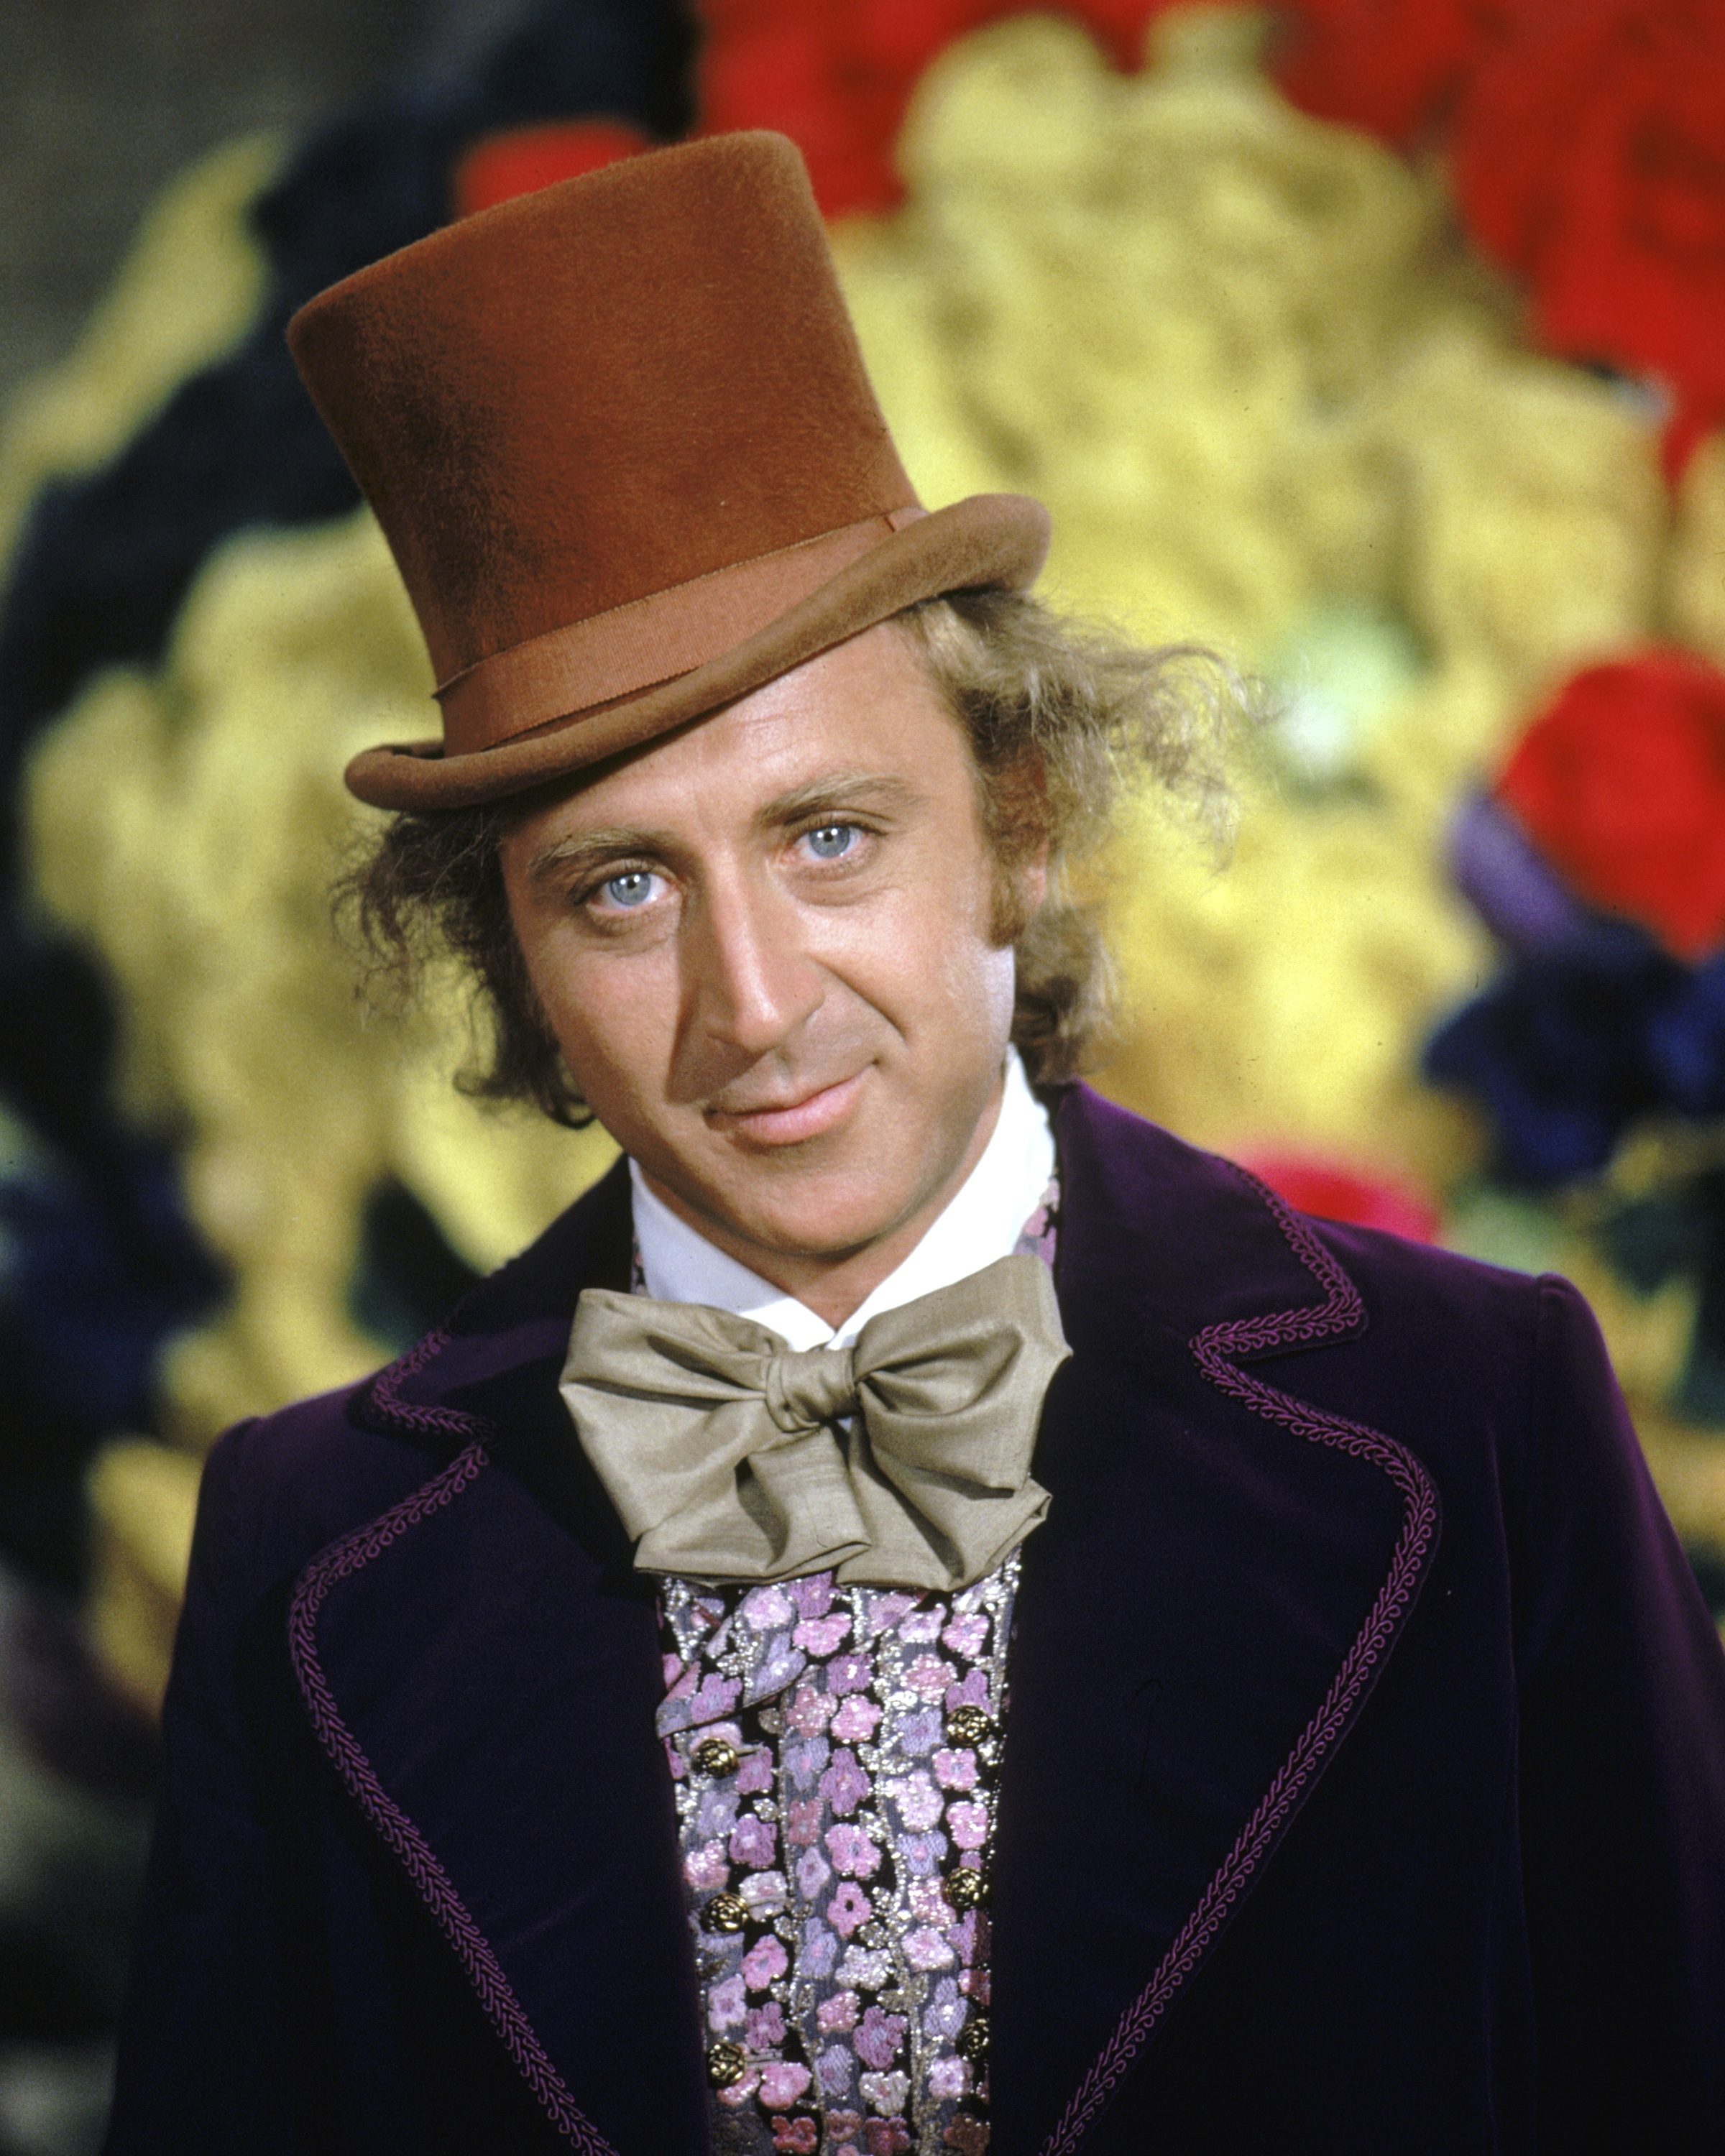 Actor Gene Wilder as Willy Wonka in Willy Wonka & The Chocolate Factory in 1971. Wilder died Monday at 83.